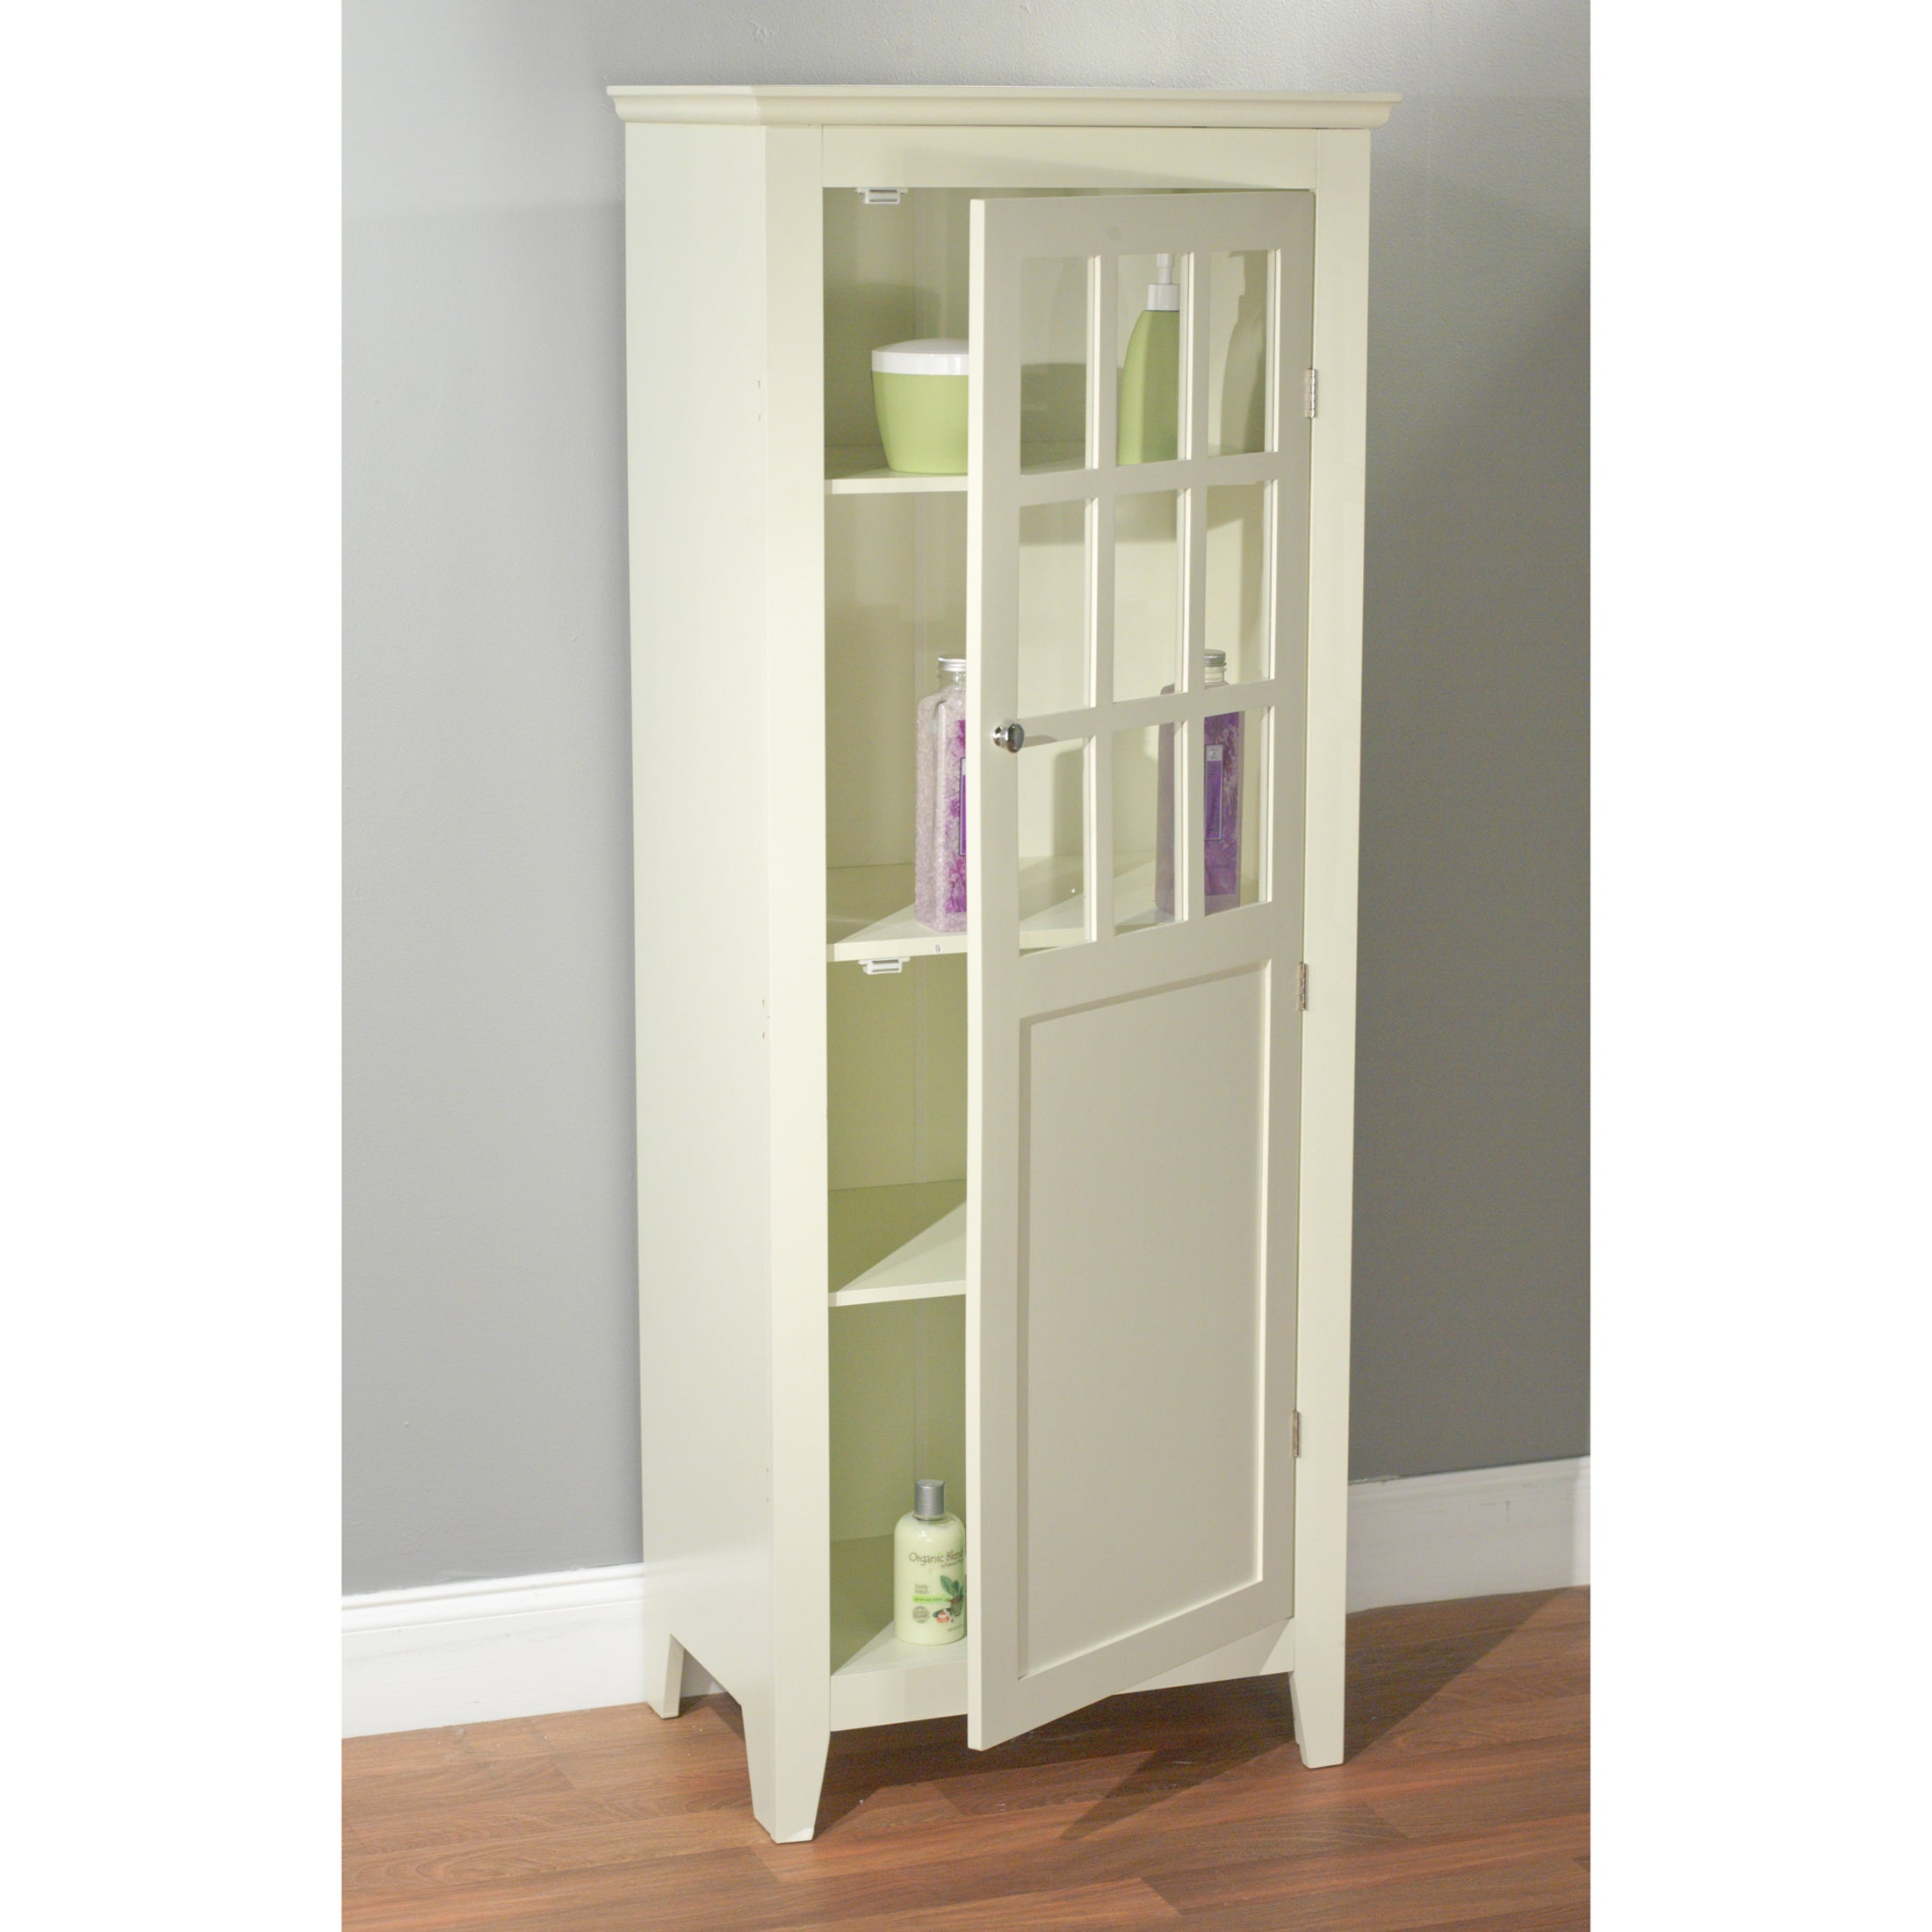 Shop Simple Living Antique White Tall Bathroom Linen Cabinet - Free ...